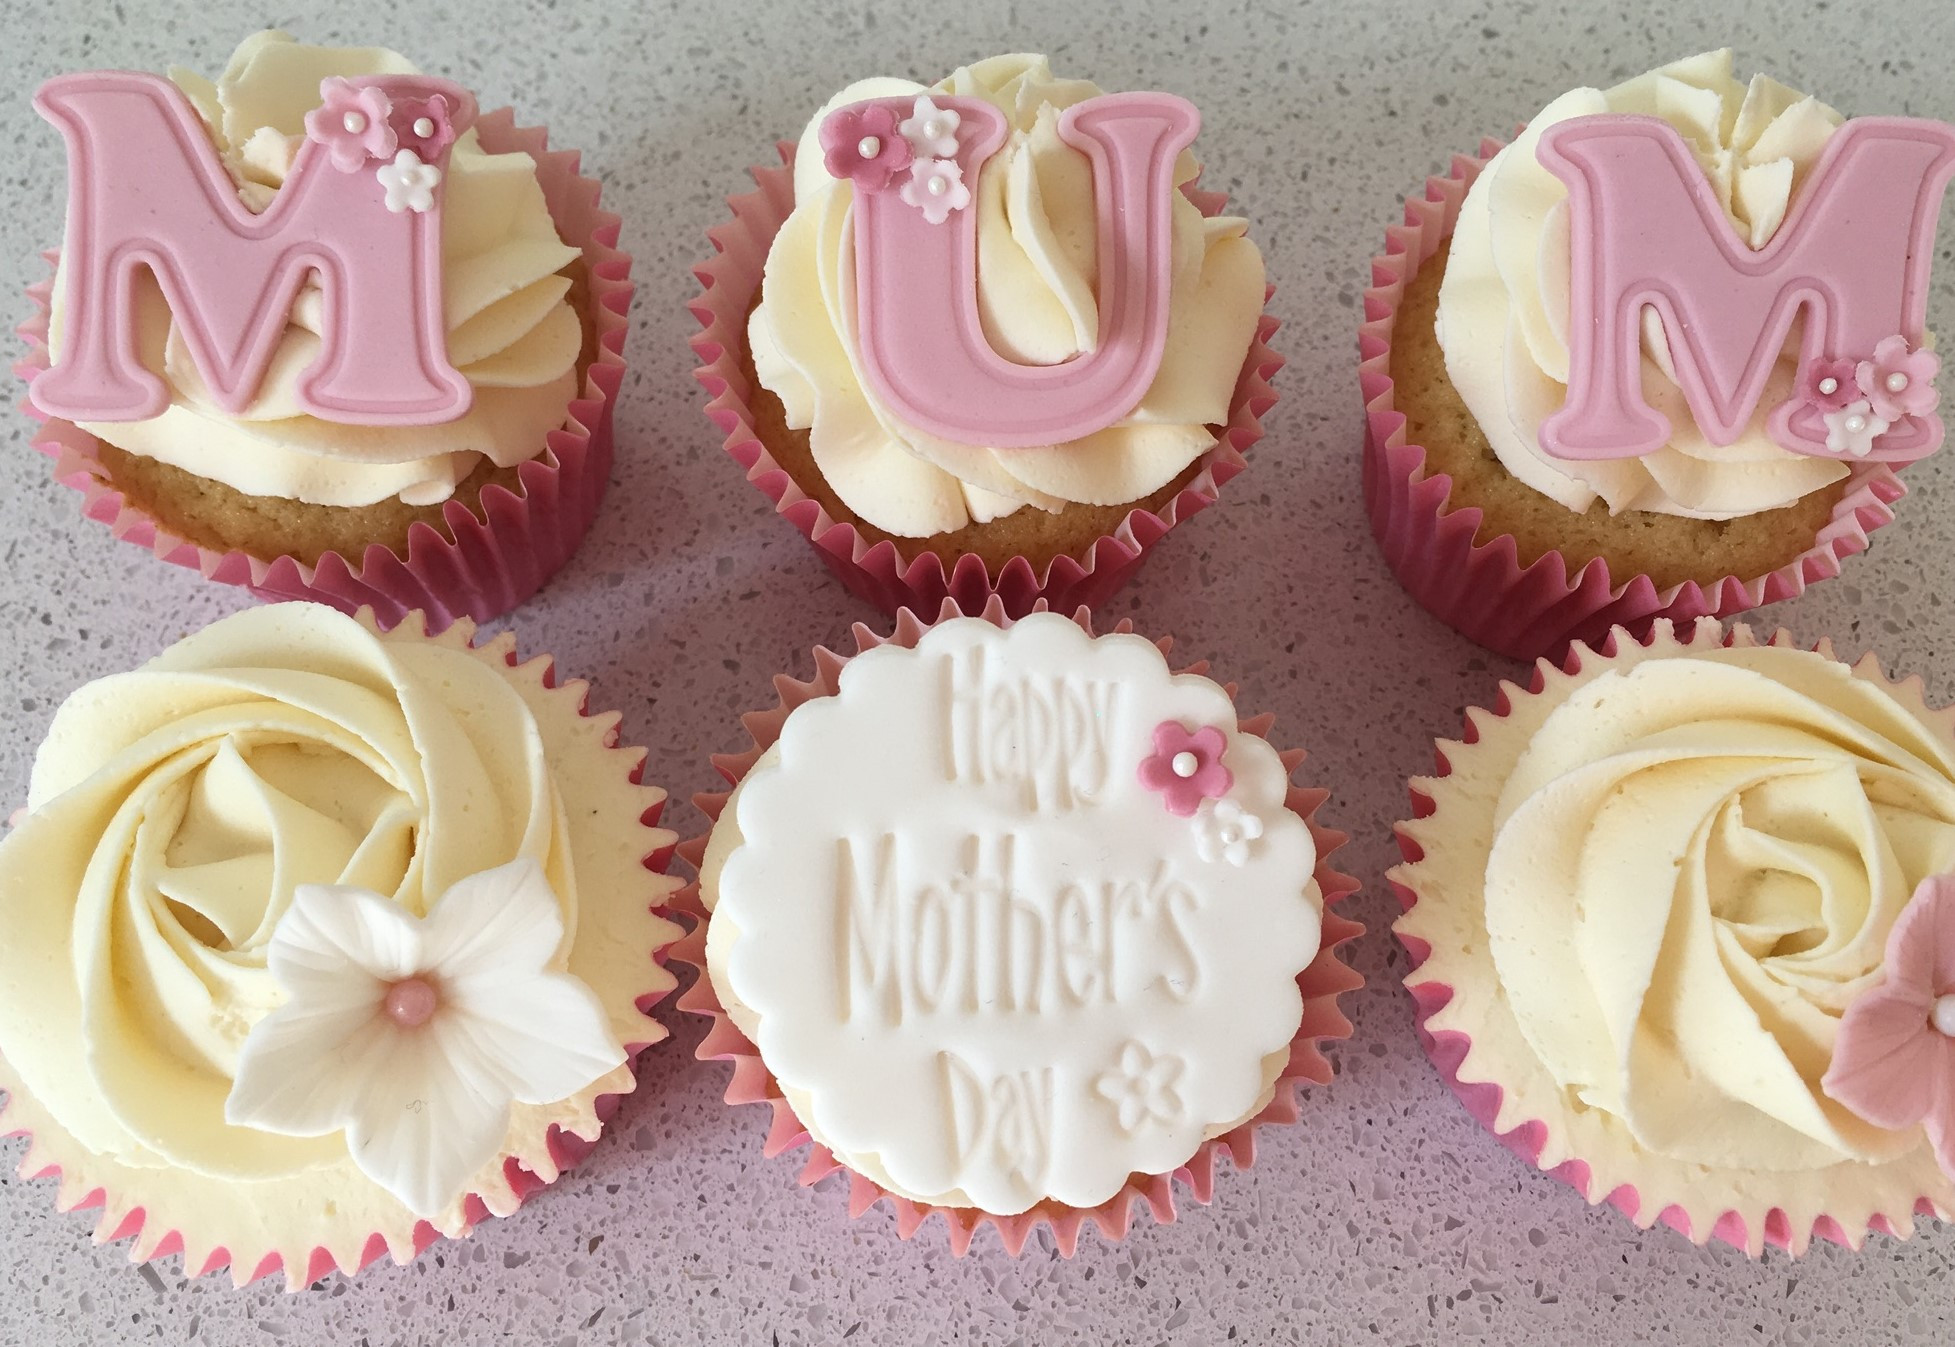 Mothers Day Cupcakes  Mother s Day Cupcakes Delivered Cake Cetera